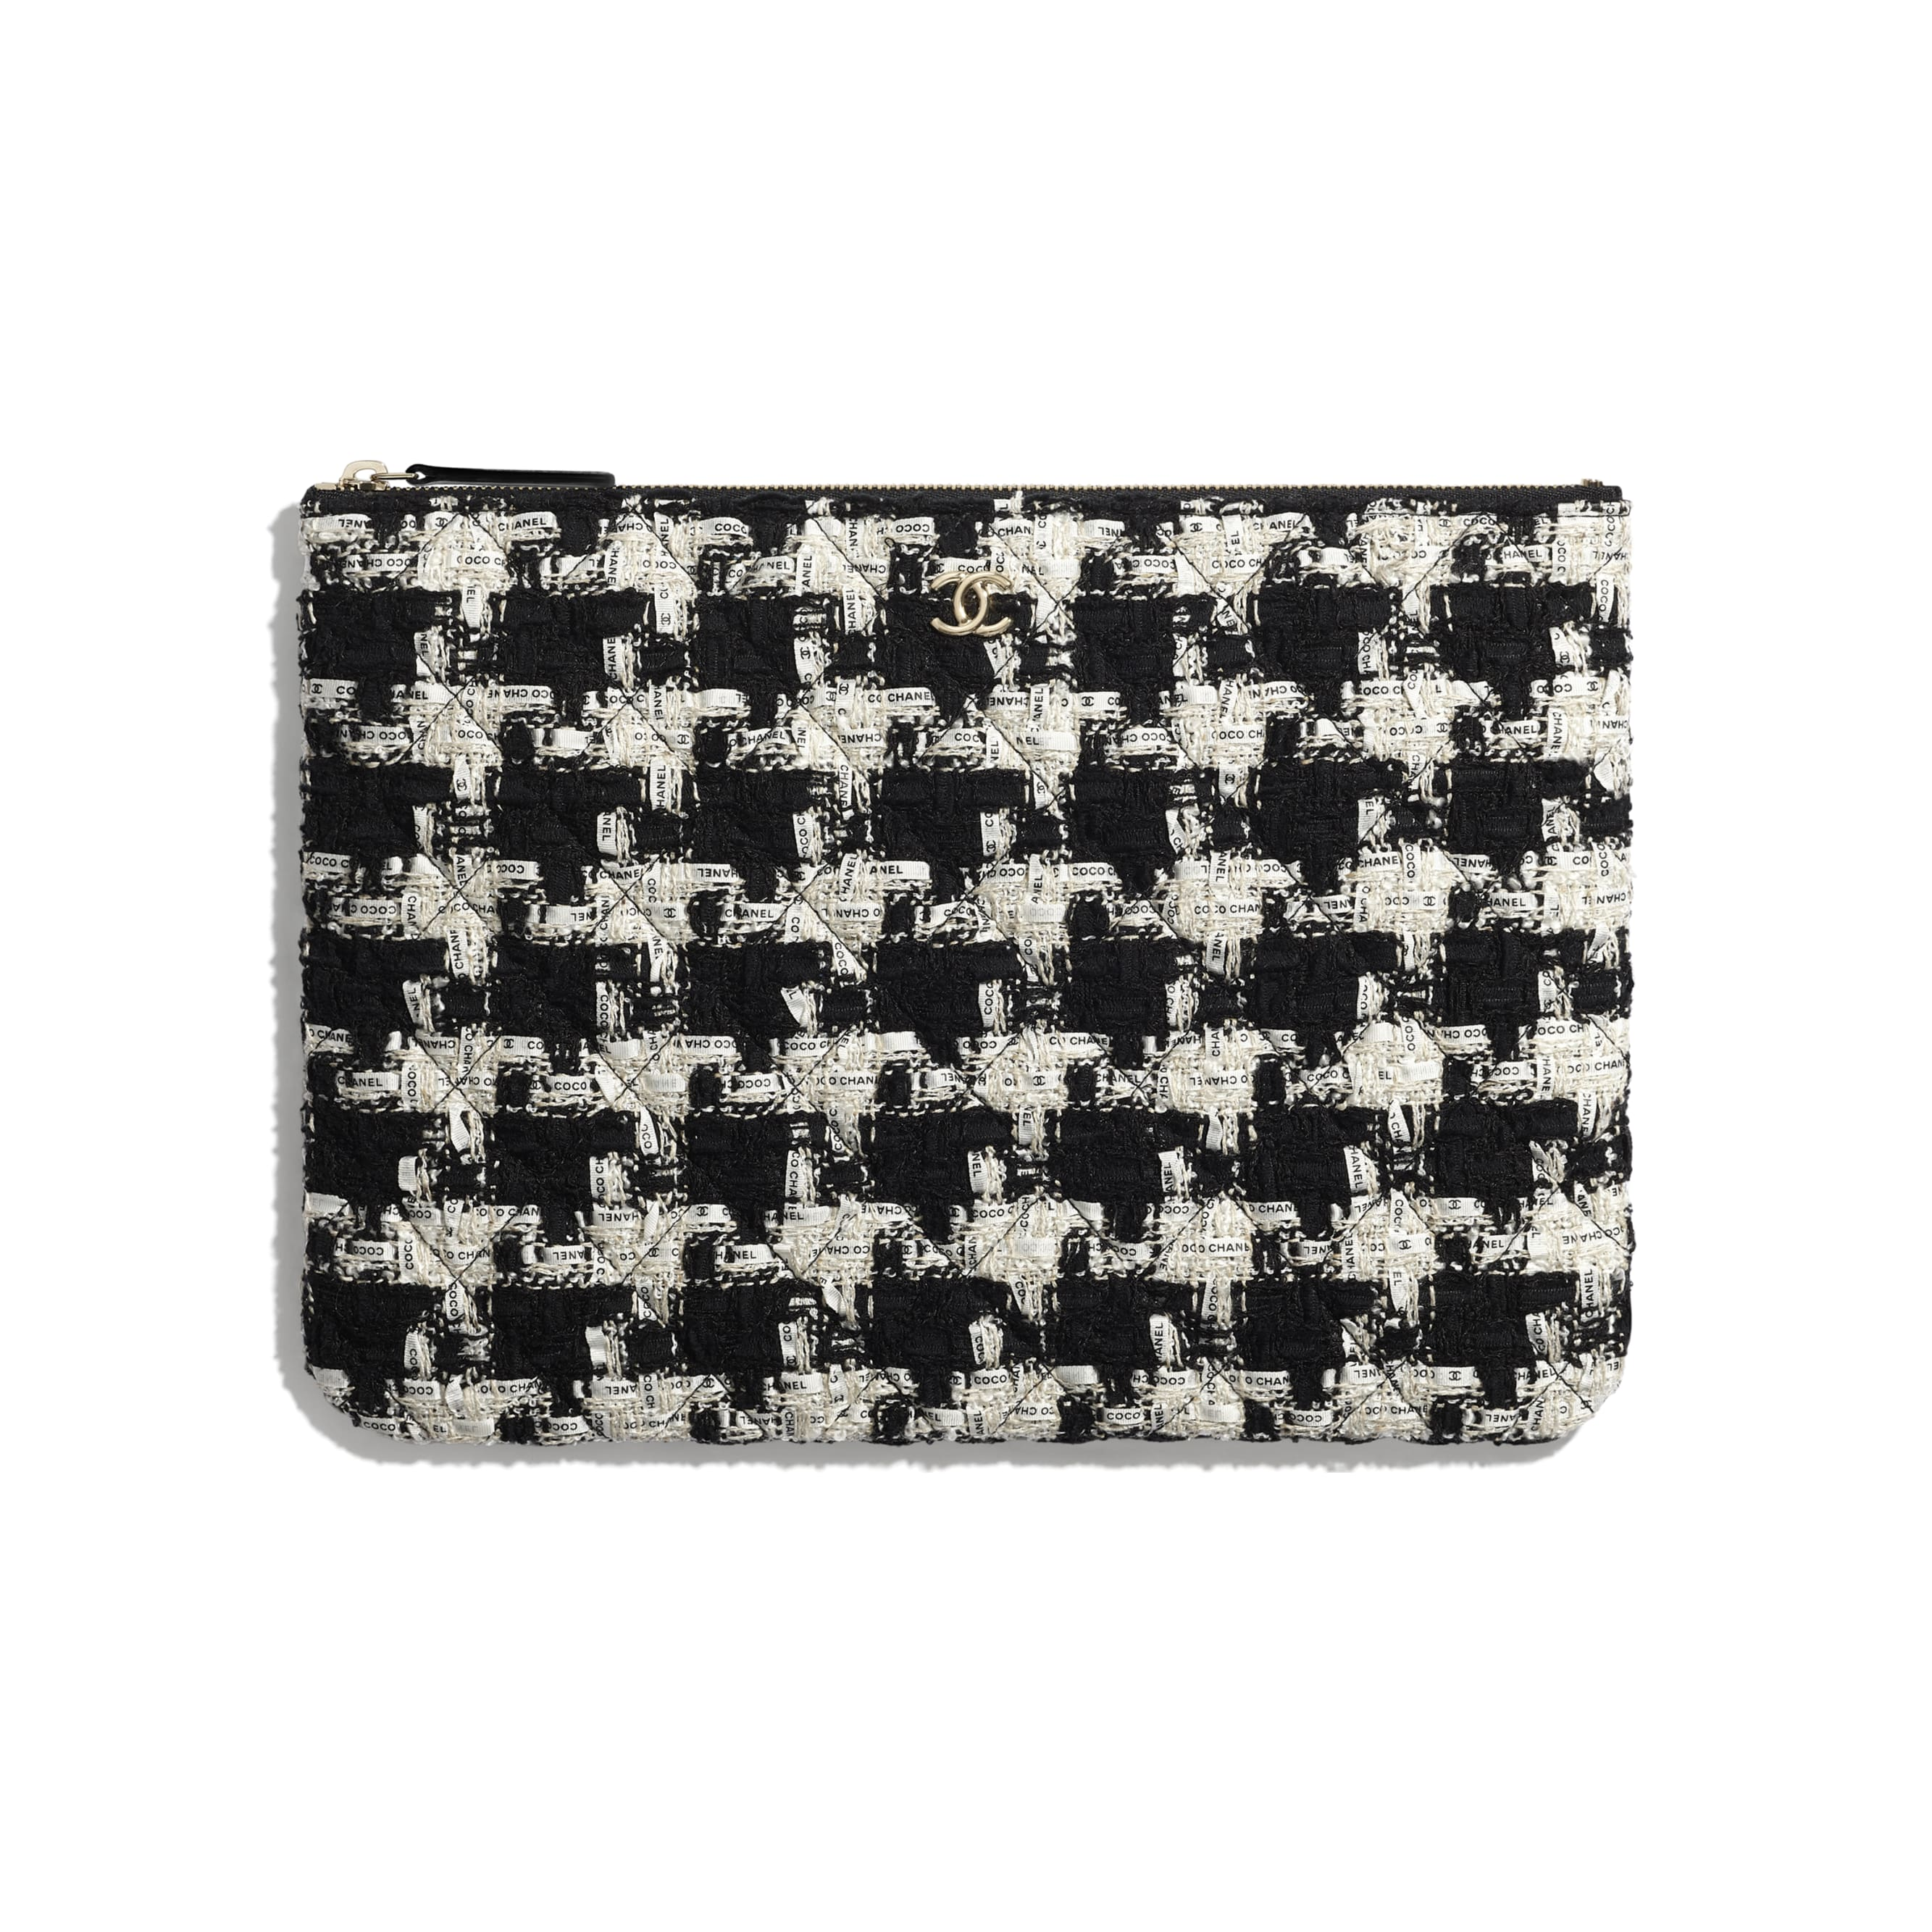 Classic Pouch - Black, Ecru & White - Tweed & Gold-Tone Metal - CHANEL - Default view - see standard sized version